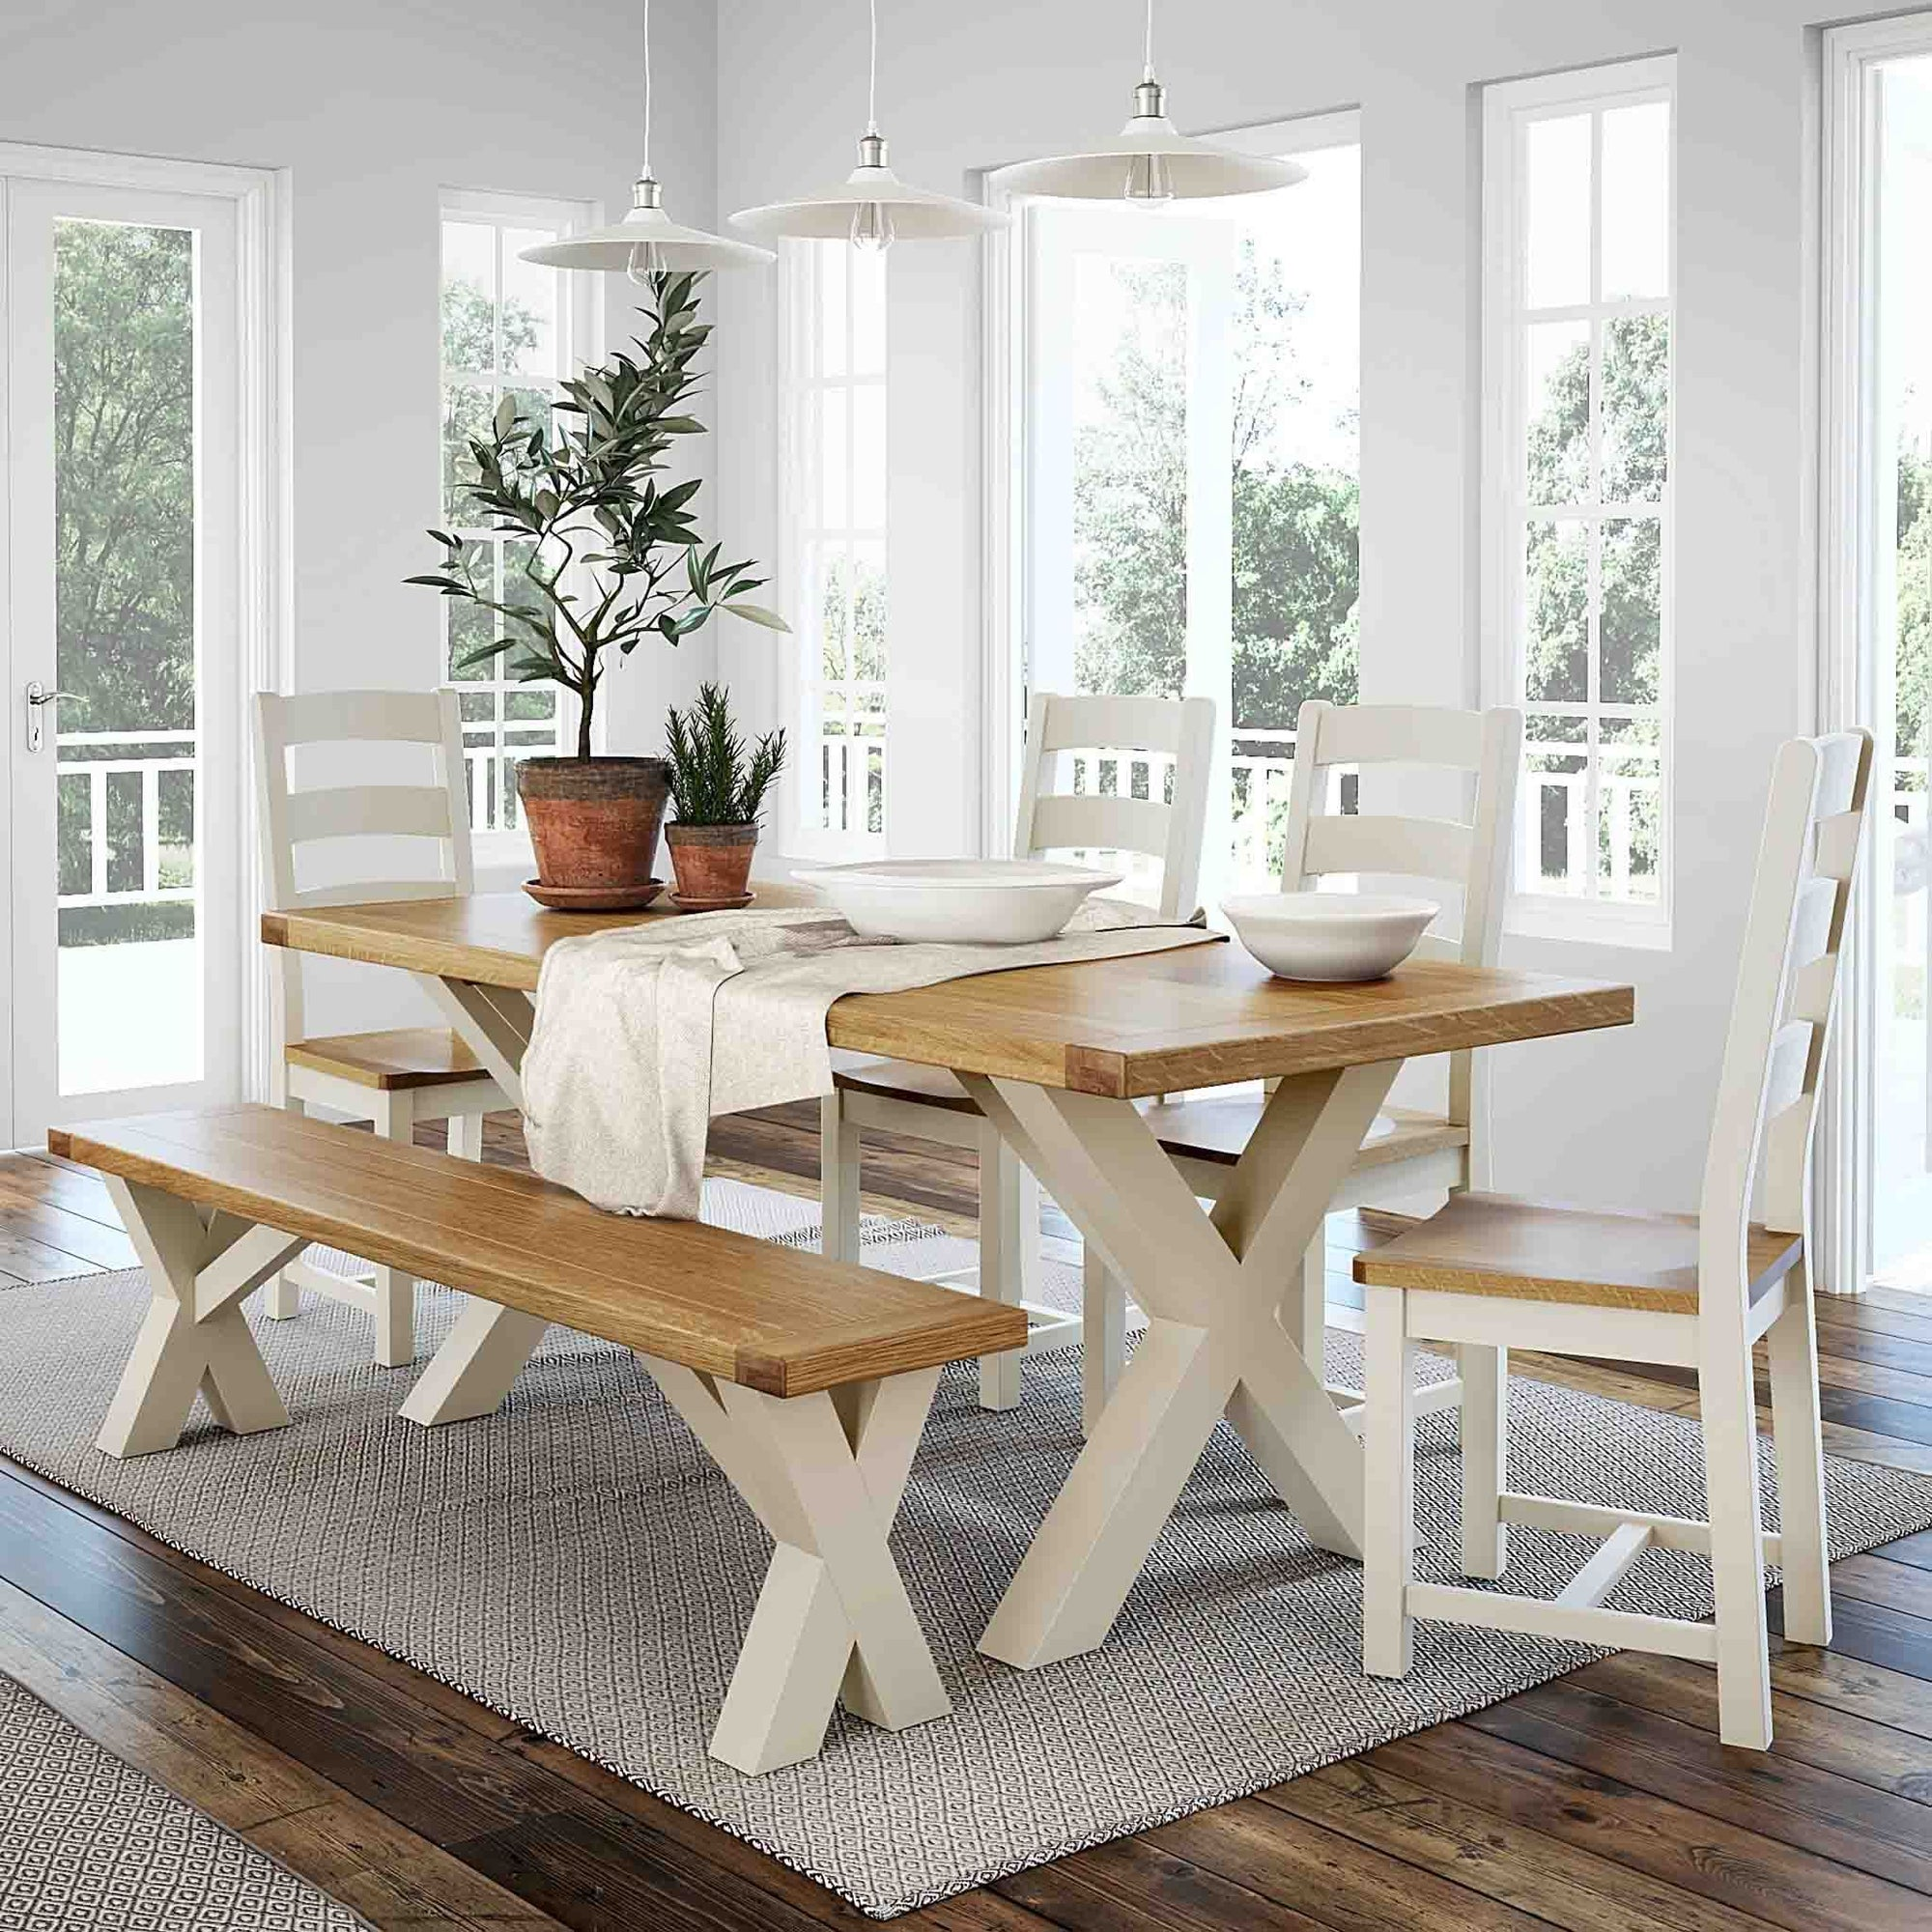 Daymer Cream Painted Cross Leg Dining Table With Oak Top Roseland Furniture